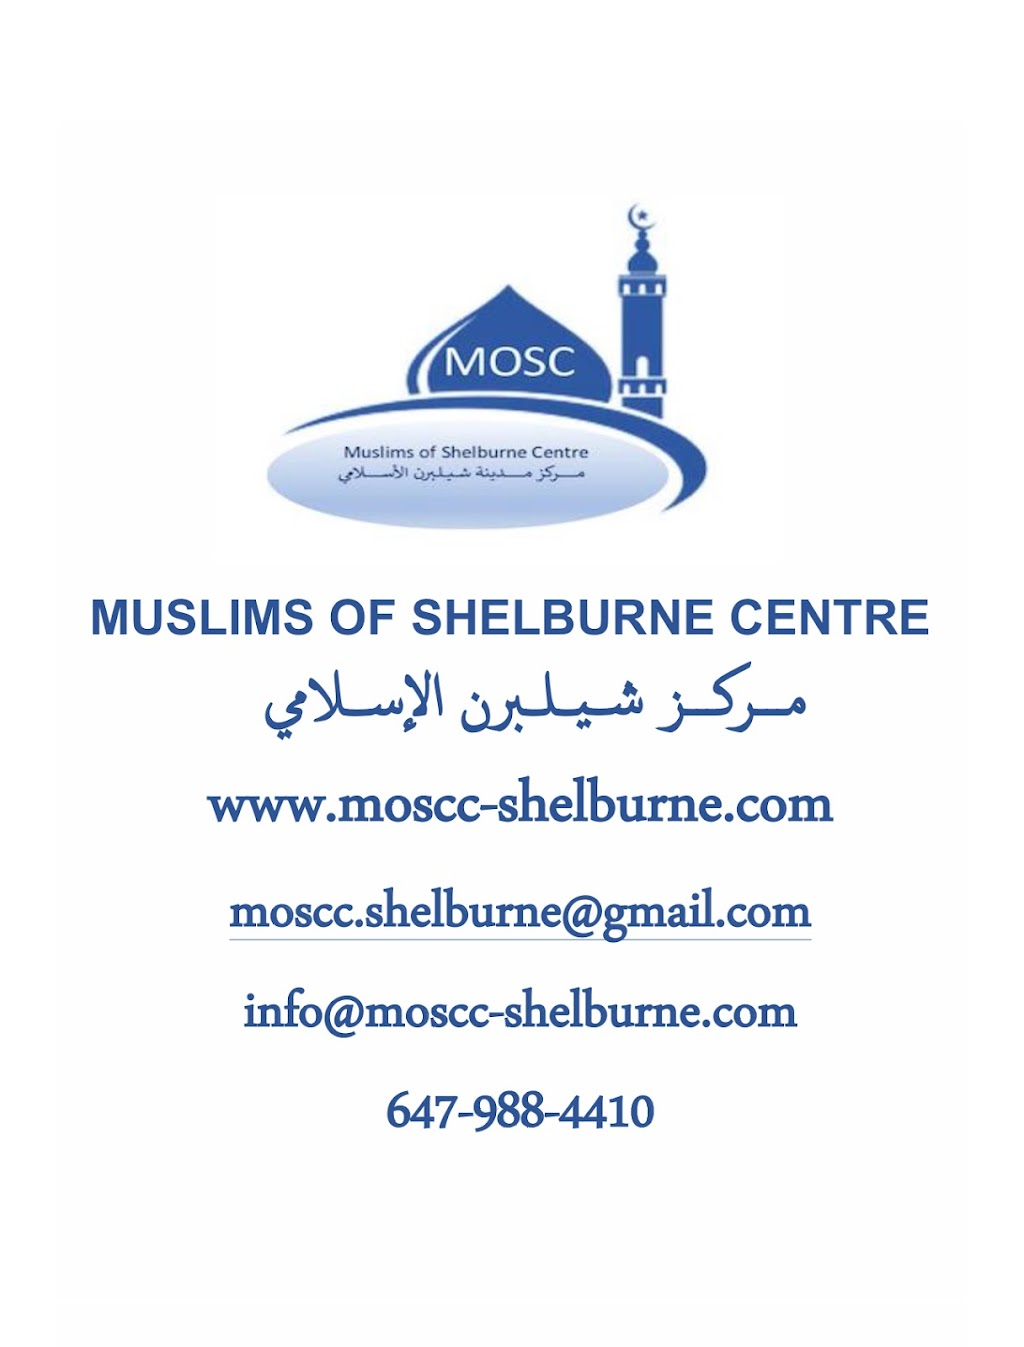 Muslims of Shelburne Centre Masjid - Mosque - Musalla | mosque | 506195 ON-89, Shelburne, ON L9V 0N7, Canada | 6479884410 OR +1 647-988-4410